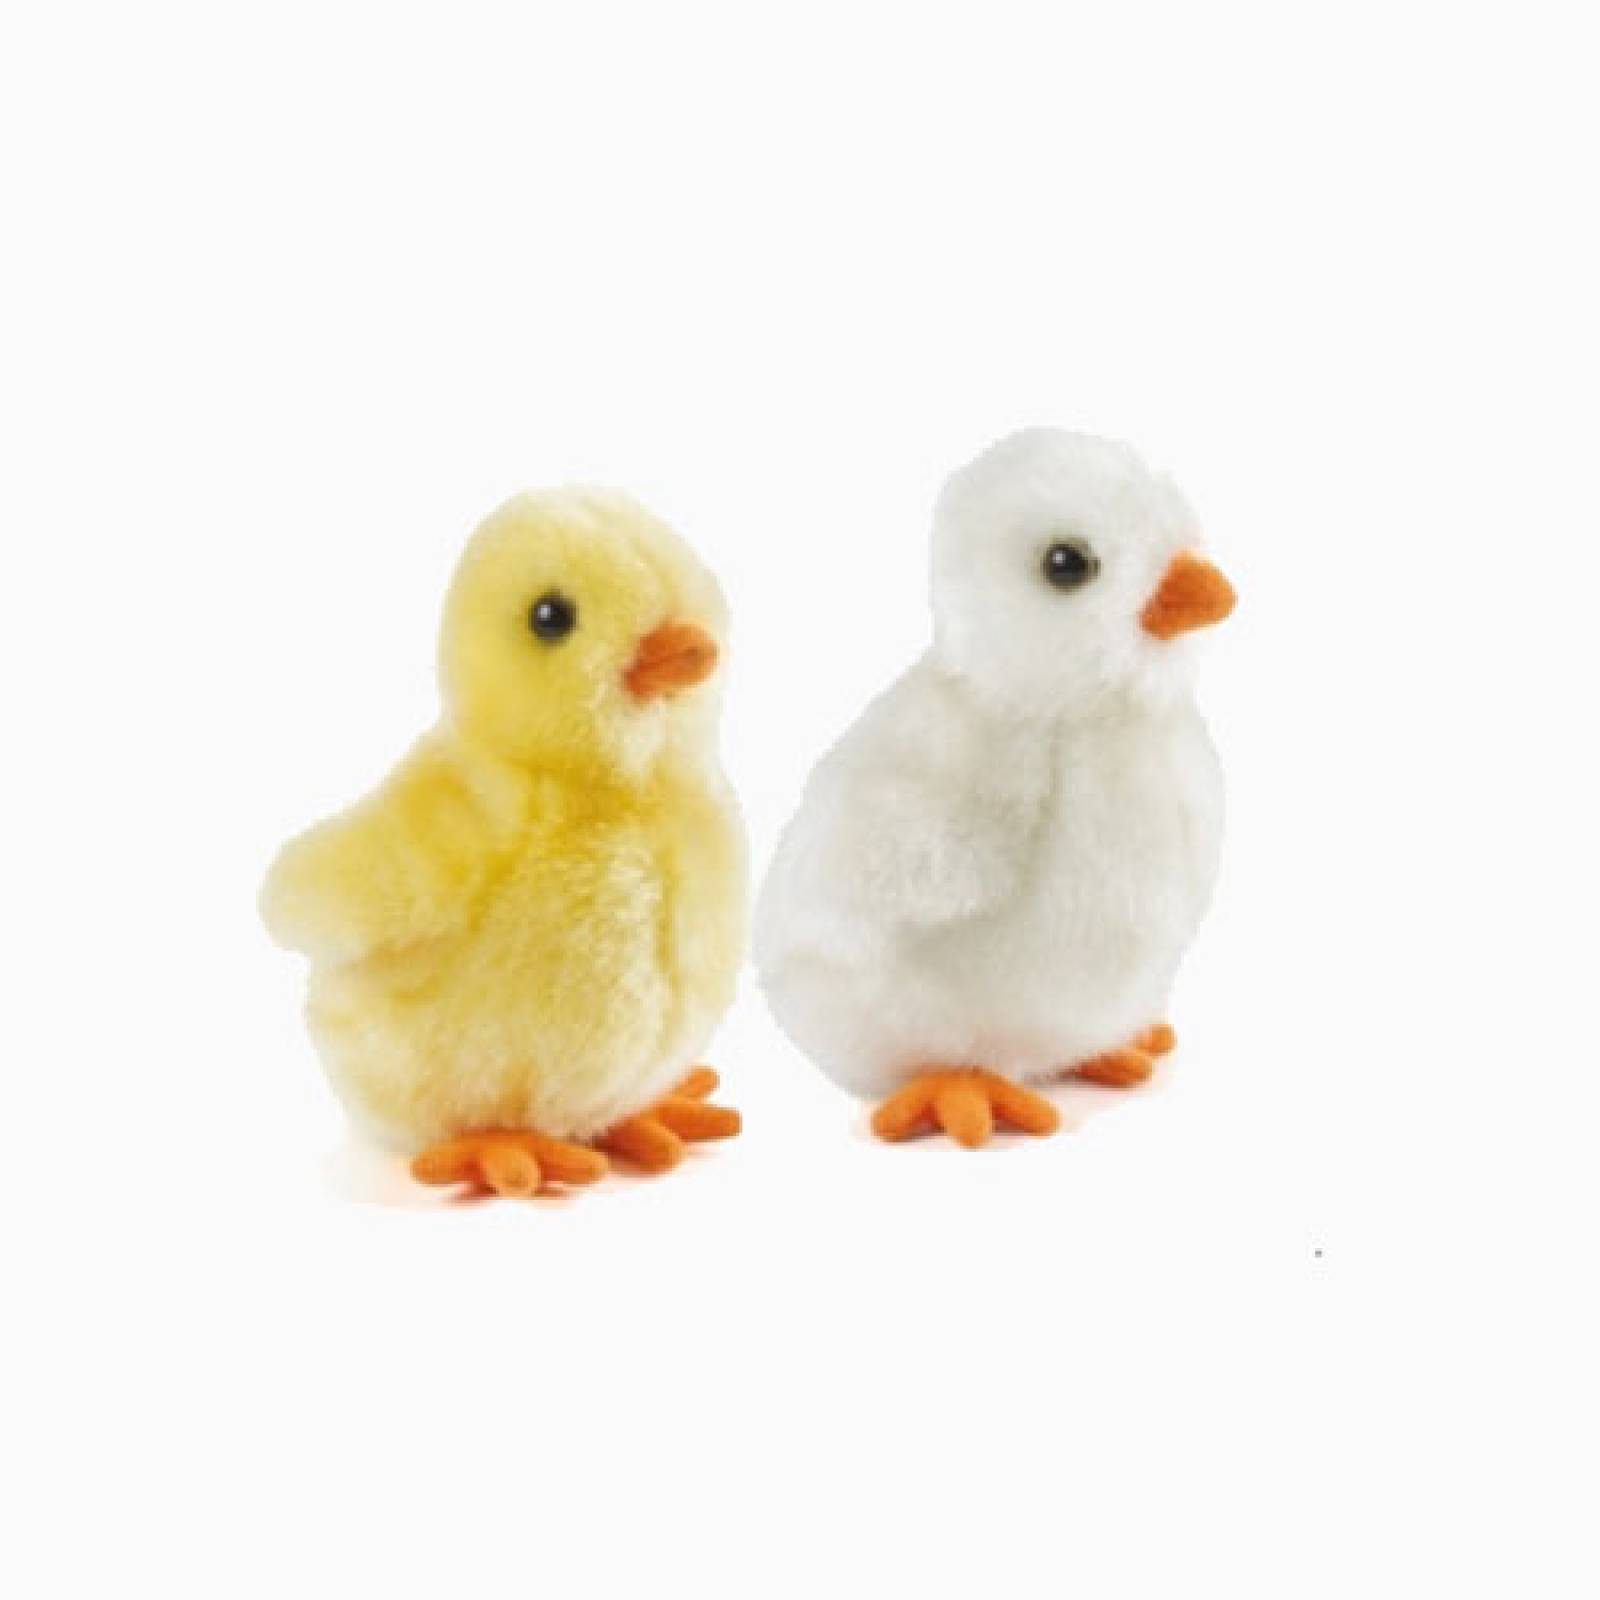 Small Fluffy Chick Soft Toy 0+